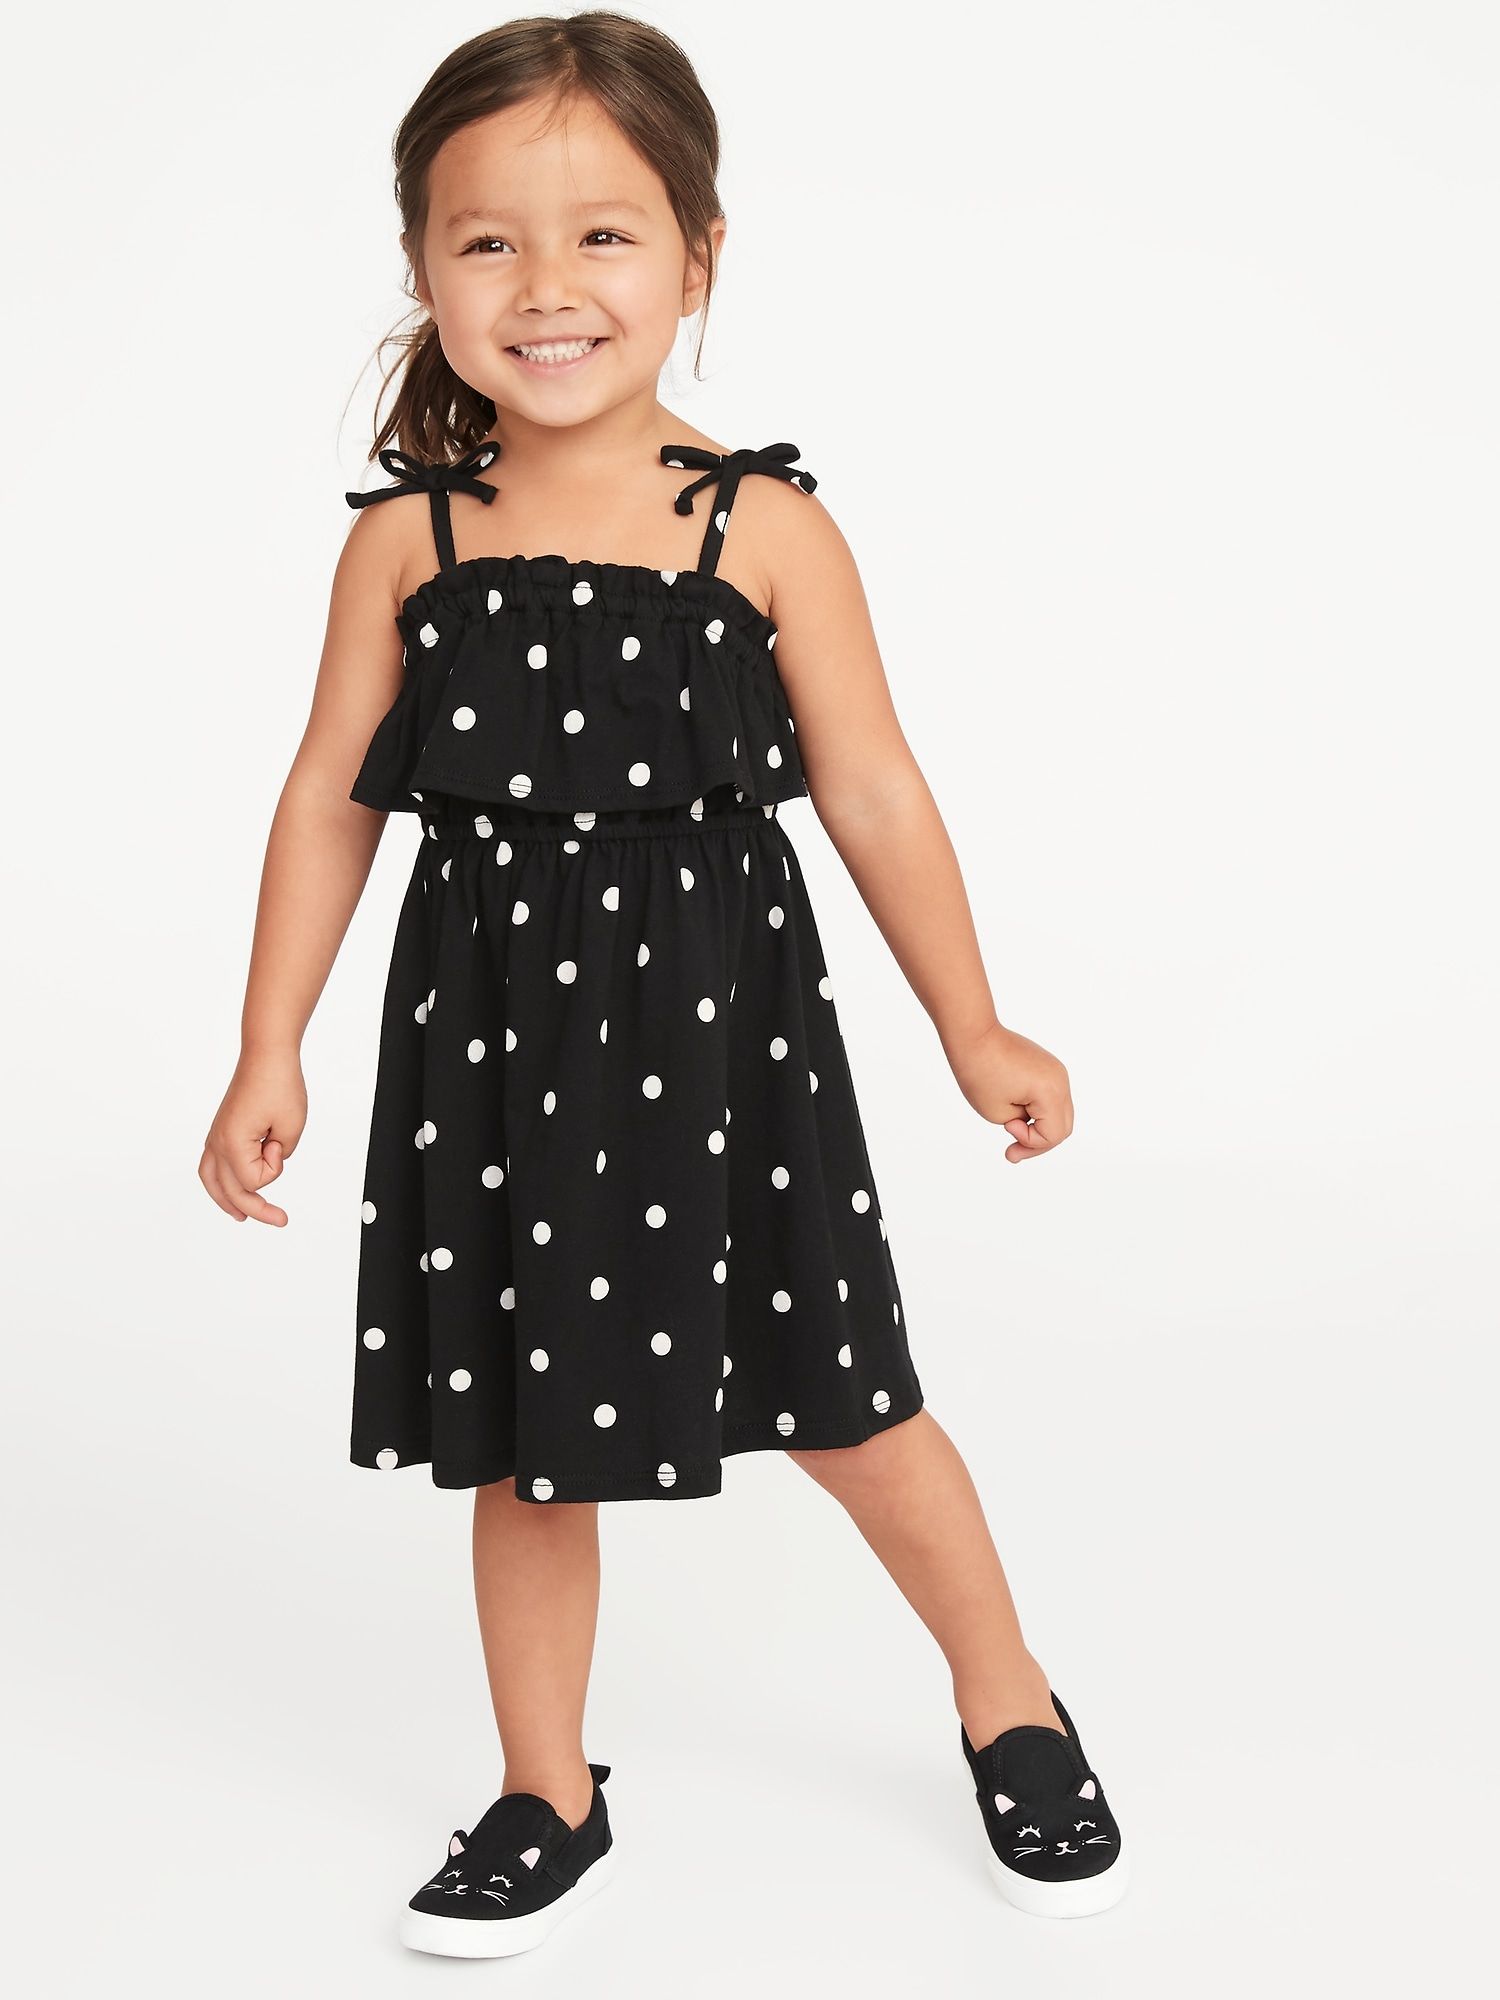 228d13f82dc31 Printed Jersey Ruffled Fit & Flare Dress for Toddler Girls | Old Navy